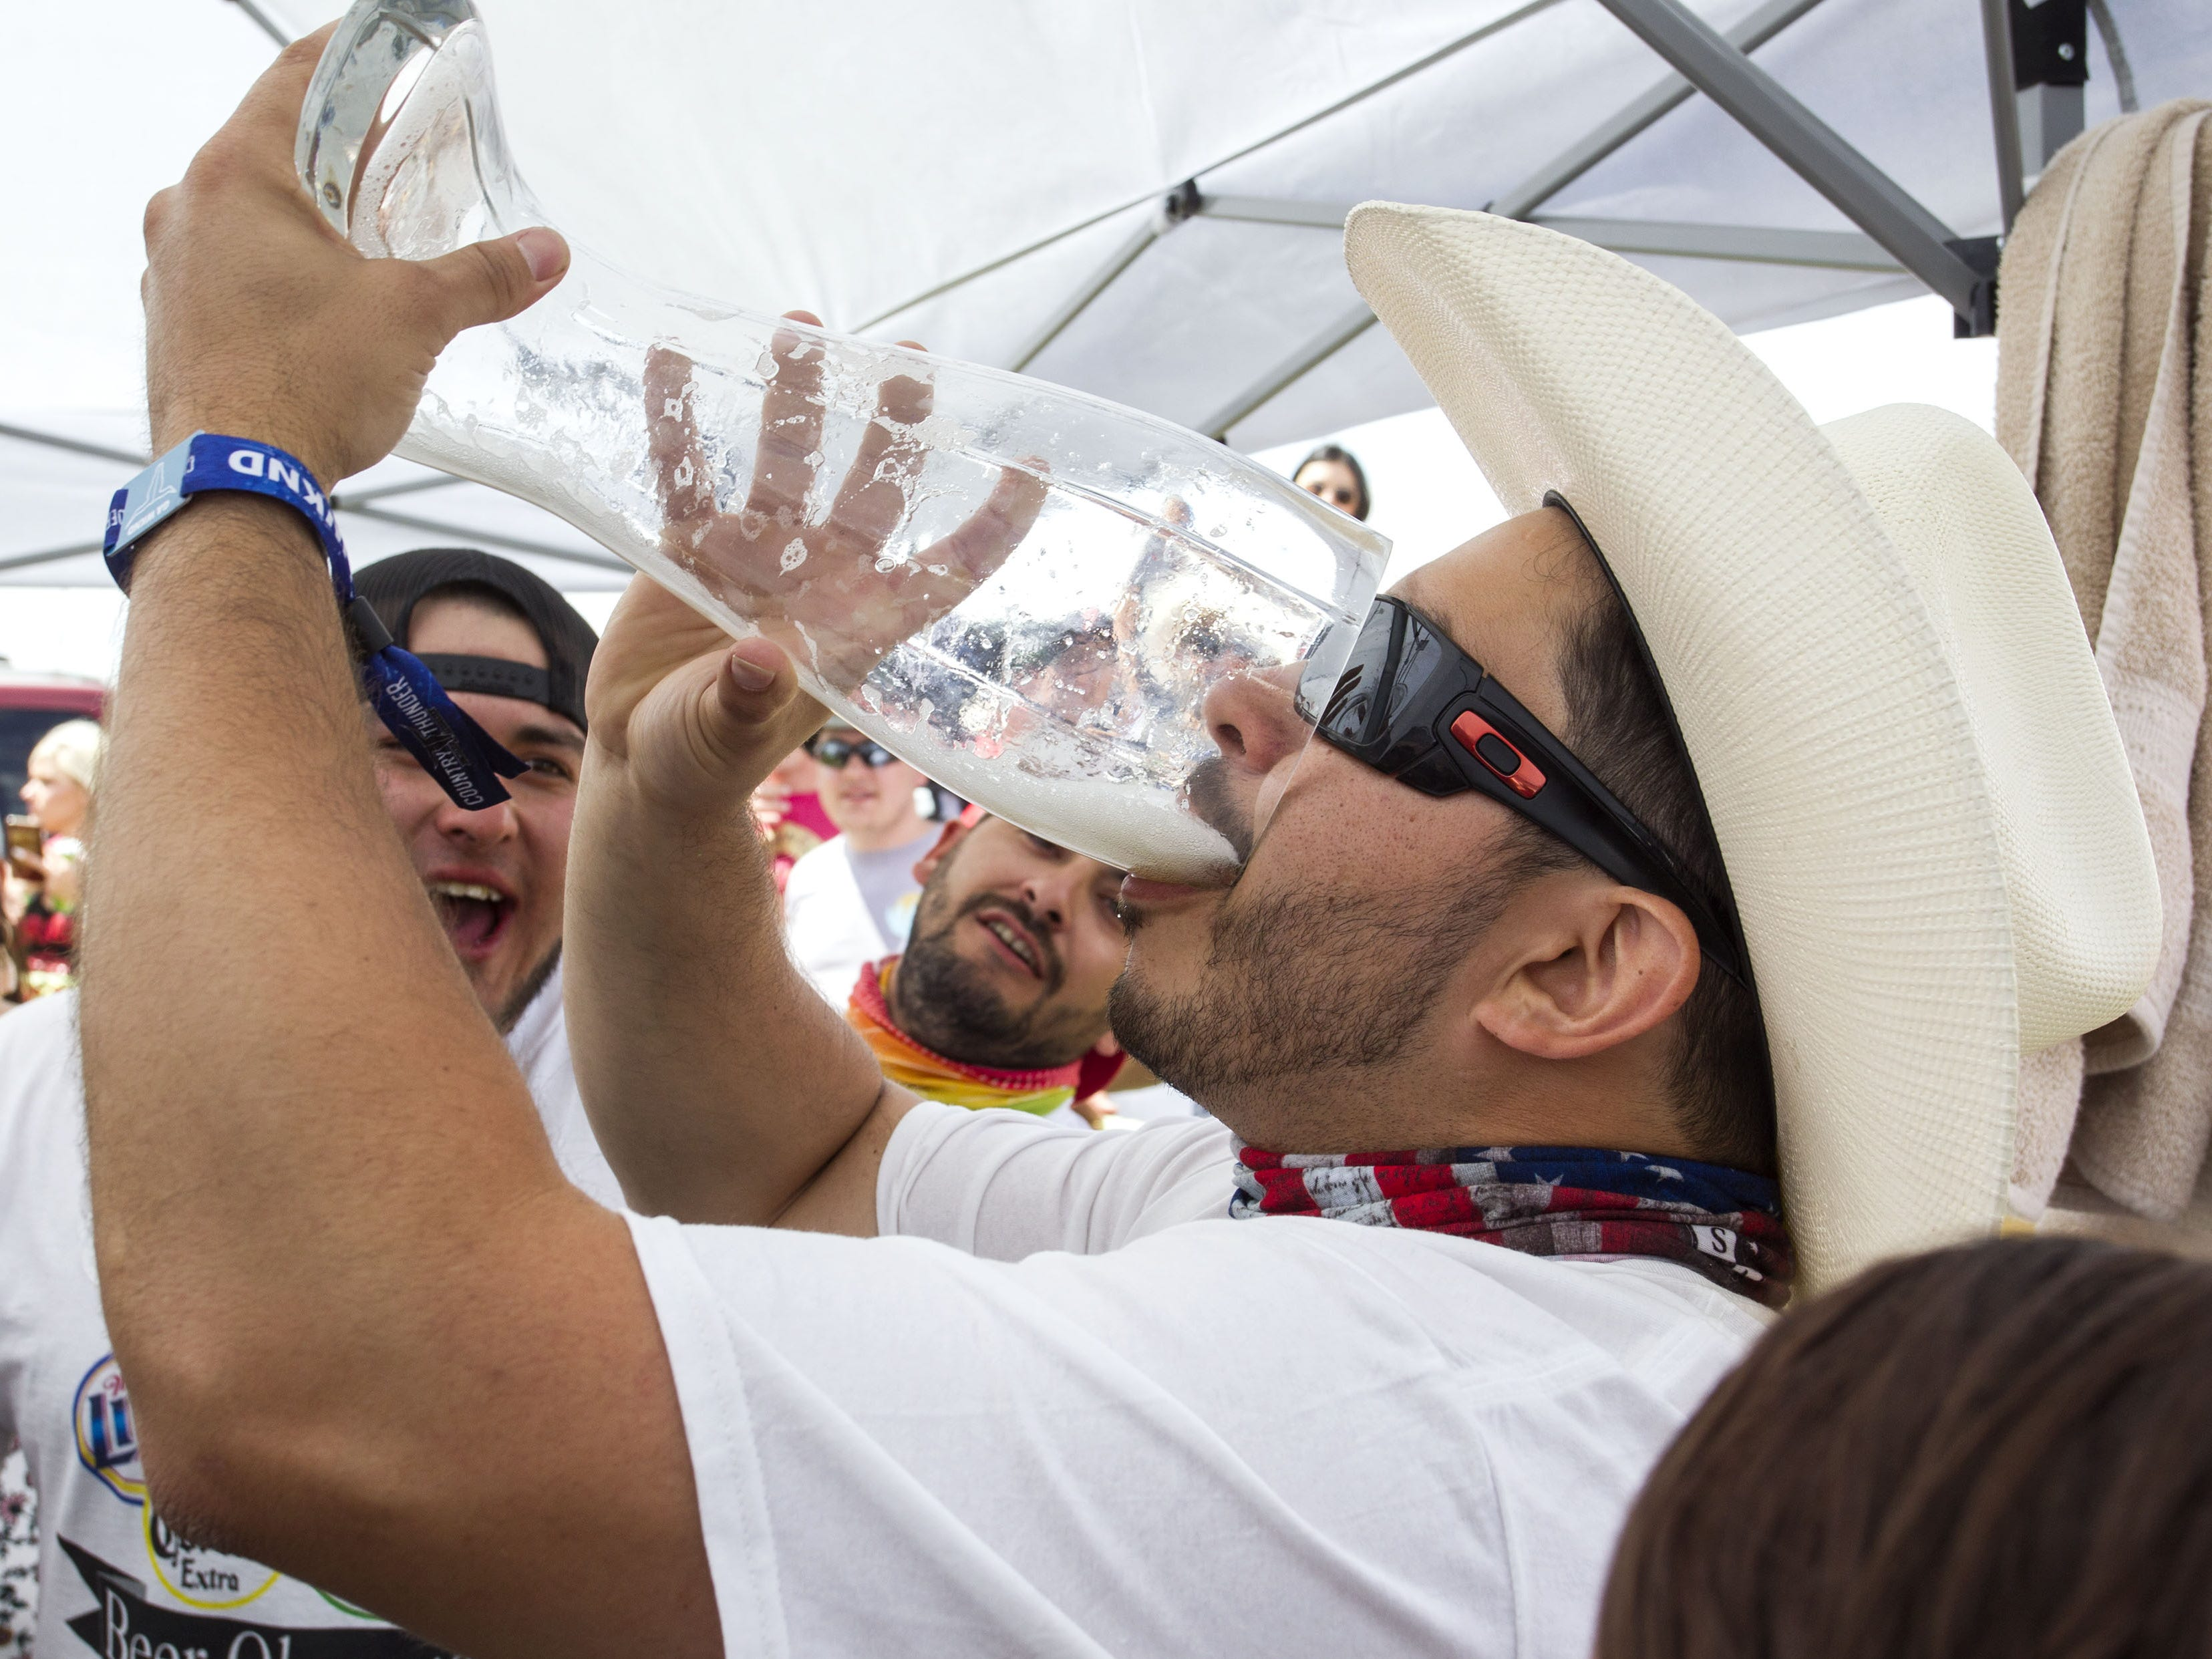 Last Chance Drunk Beer Olympian Justin Rodriguez downs the last sips of beer during the beer chugging game at Country Thunder Arizona Friday, April 12, 2019, in Florence, Ariz.